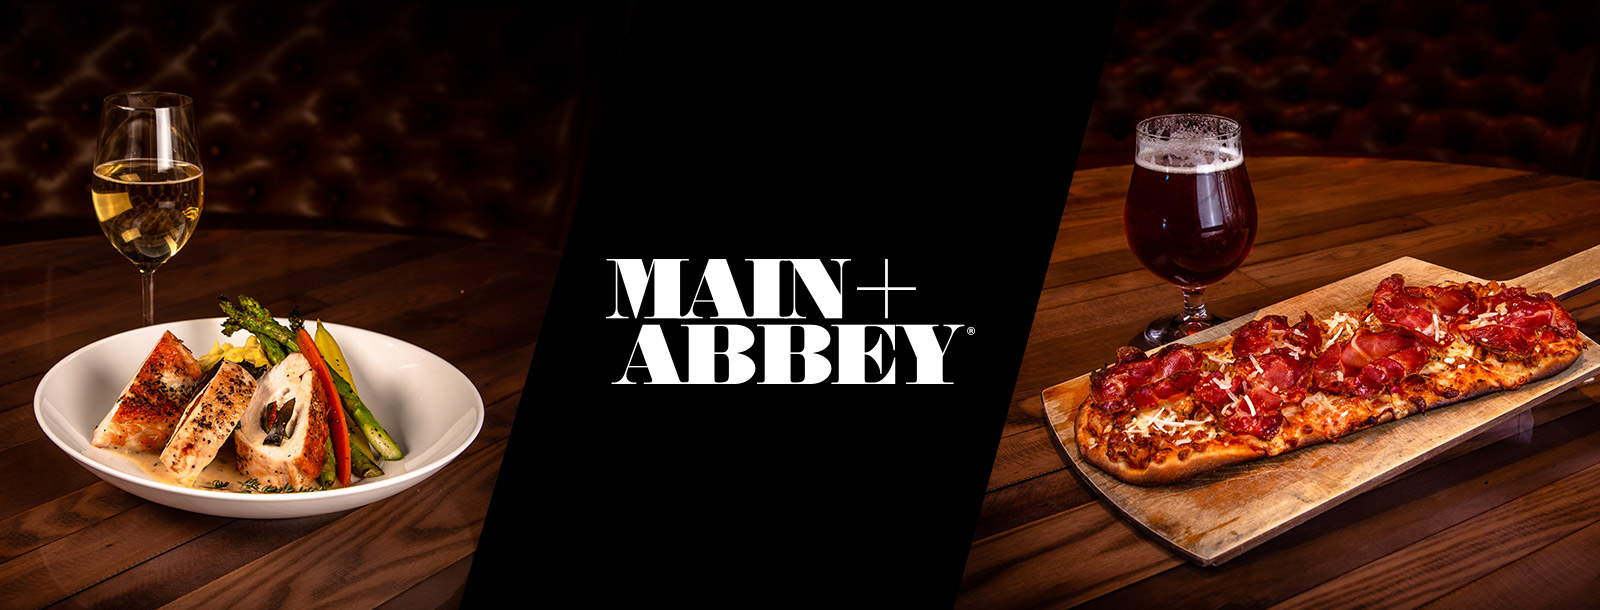 main abbey sioux city restaurants